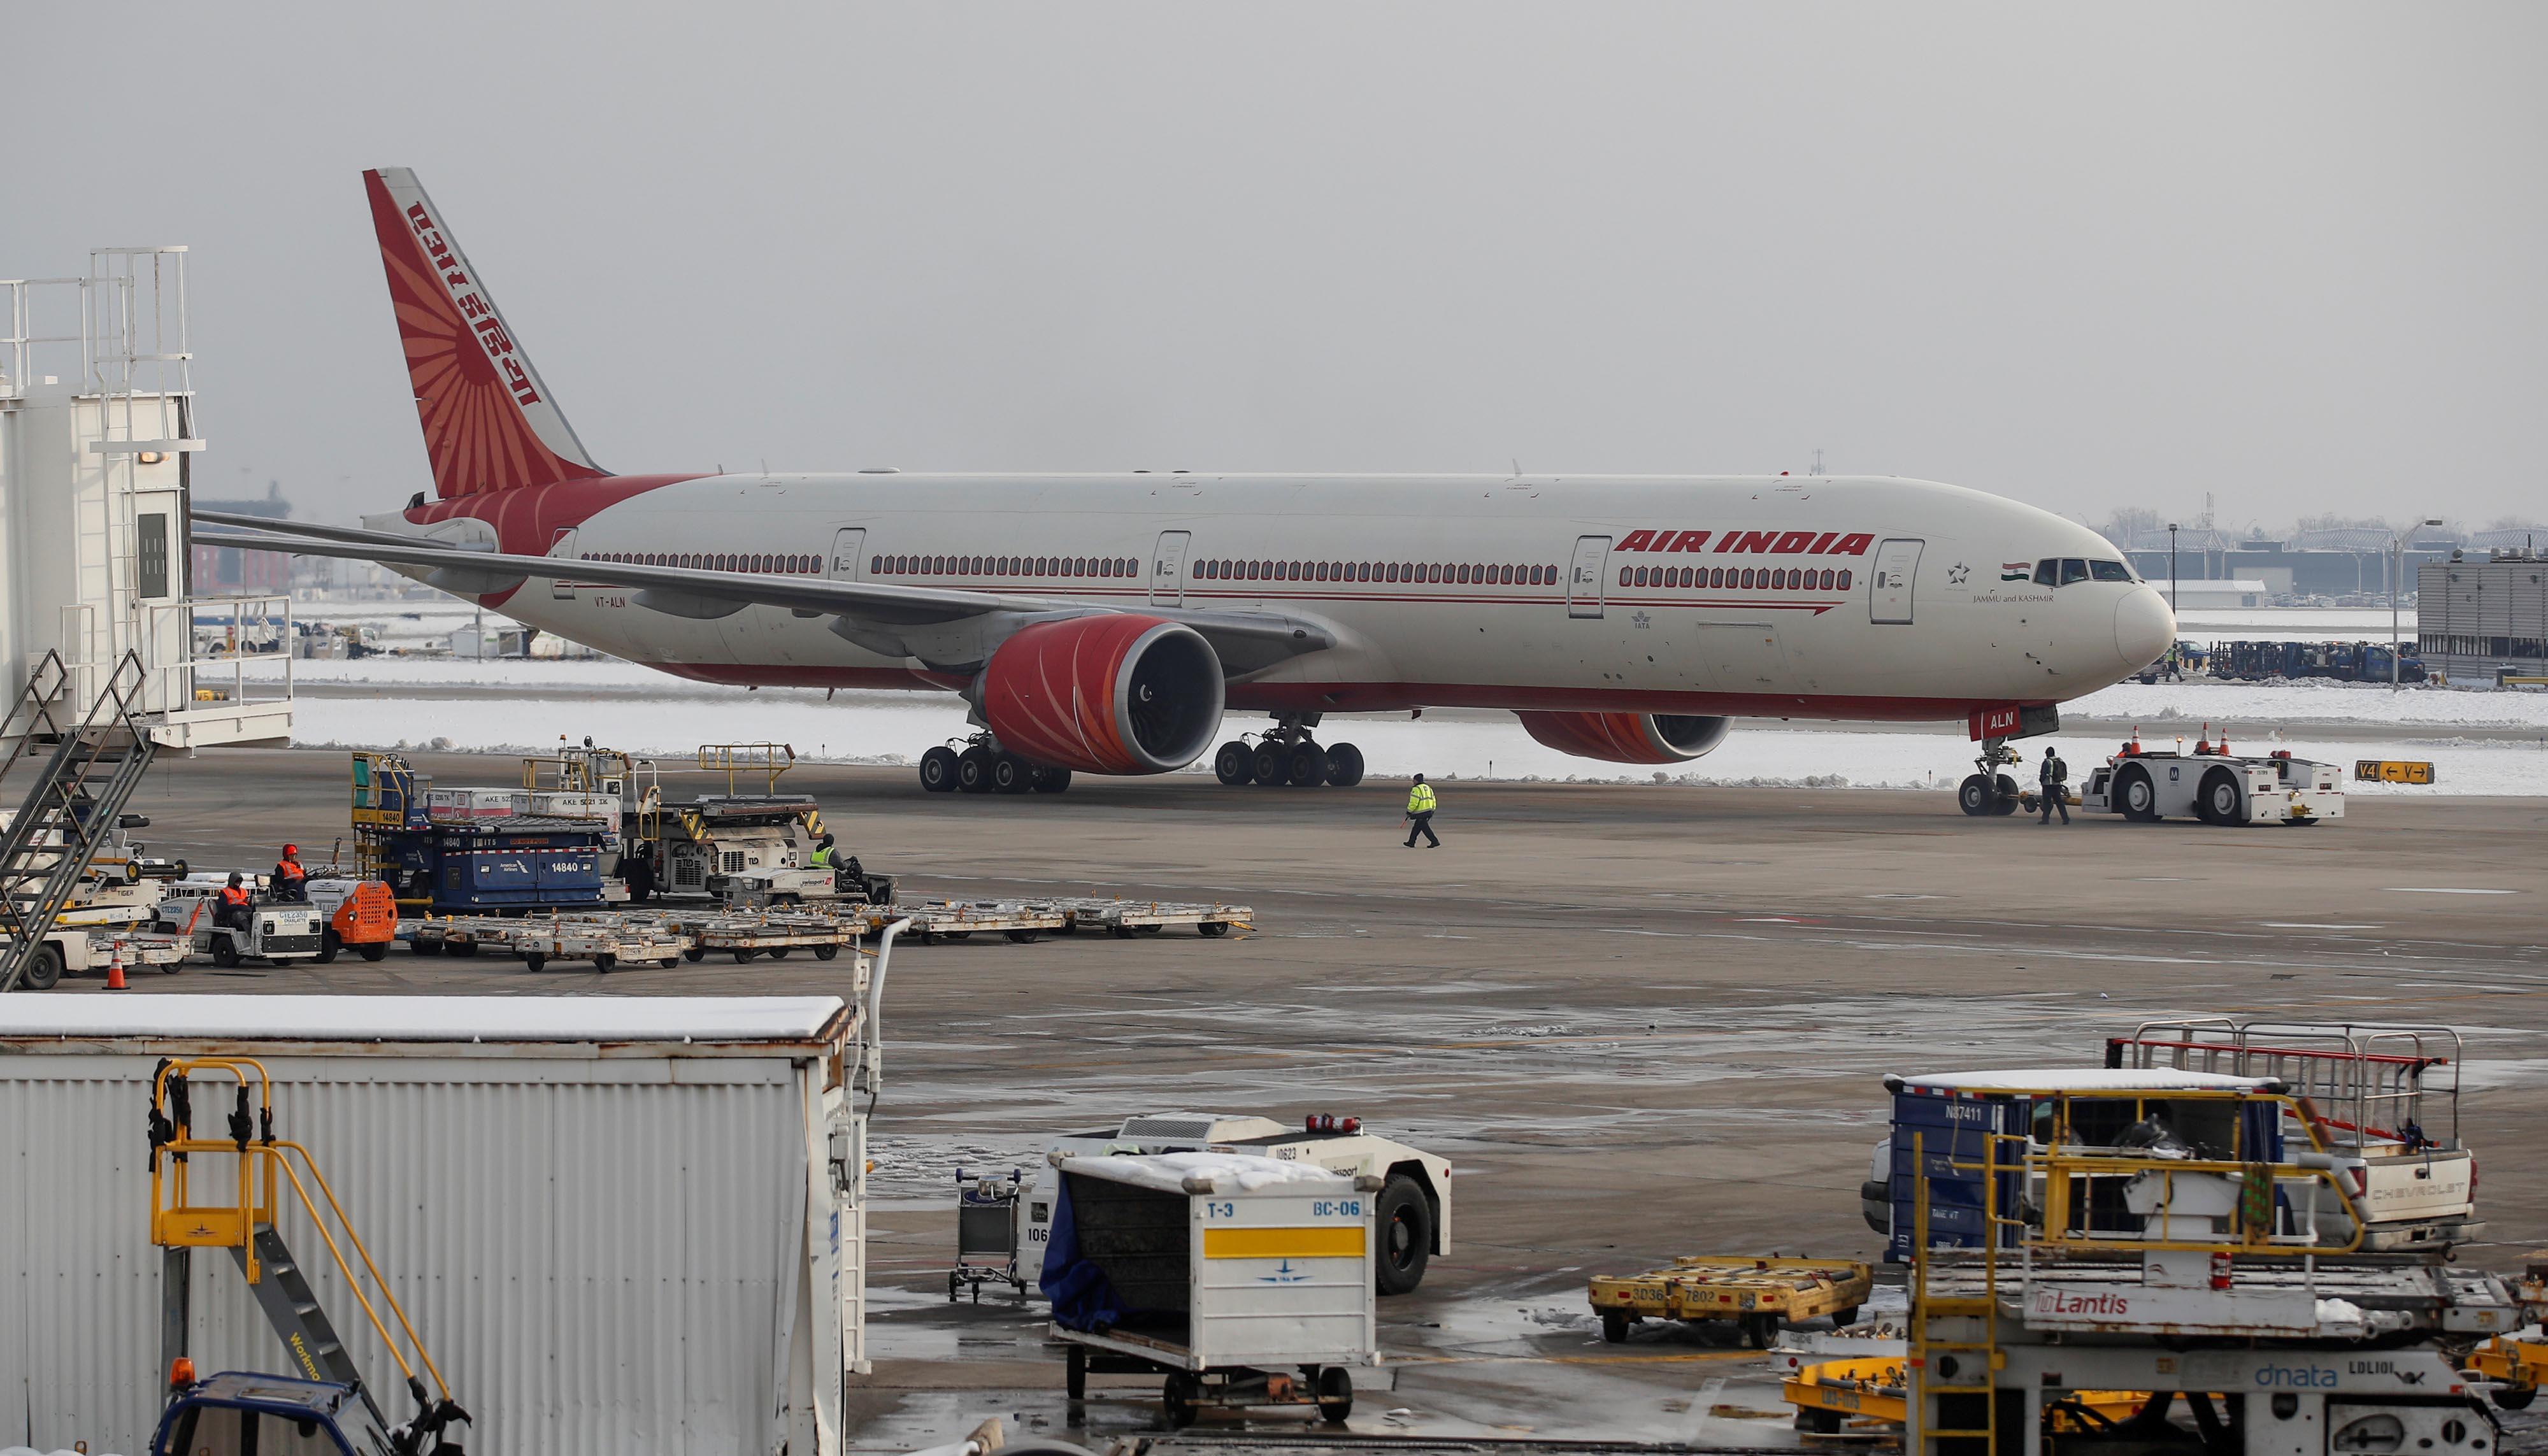 An Air India Boeing 777 plane is seen at O'Hare International Airport in Chicago, US on November 30, 2018. Photo: REUTERS